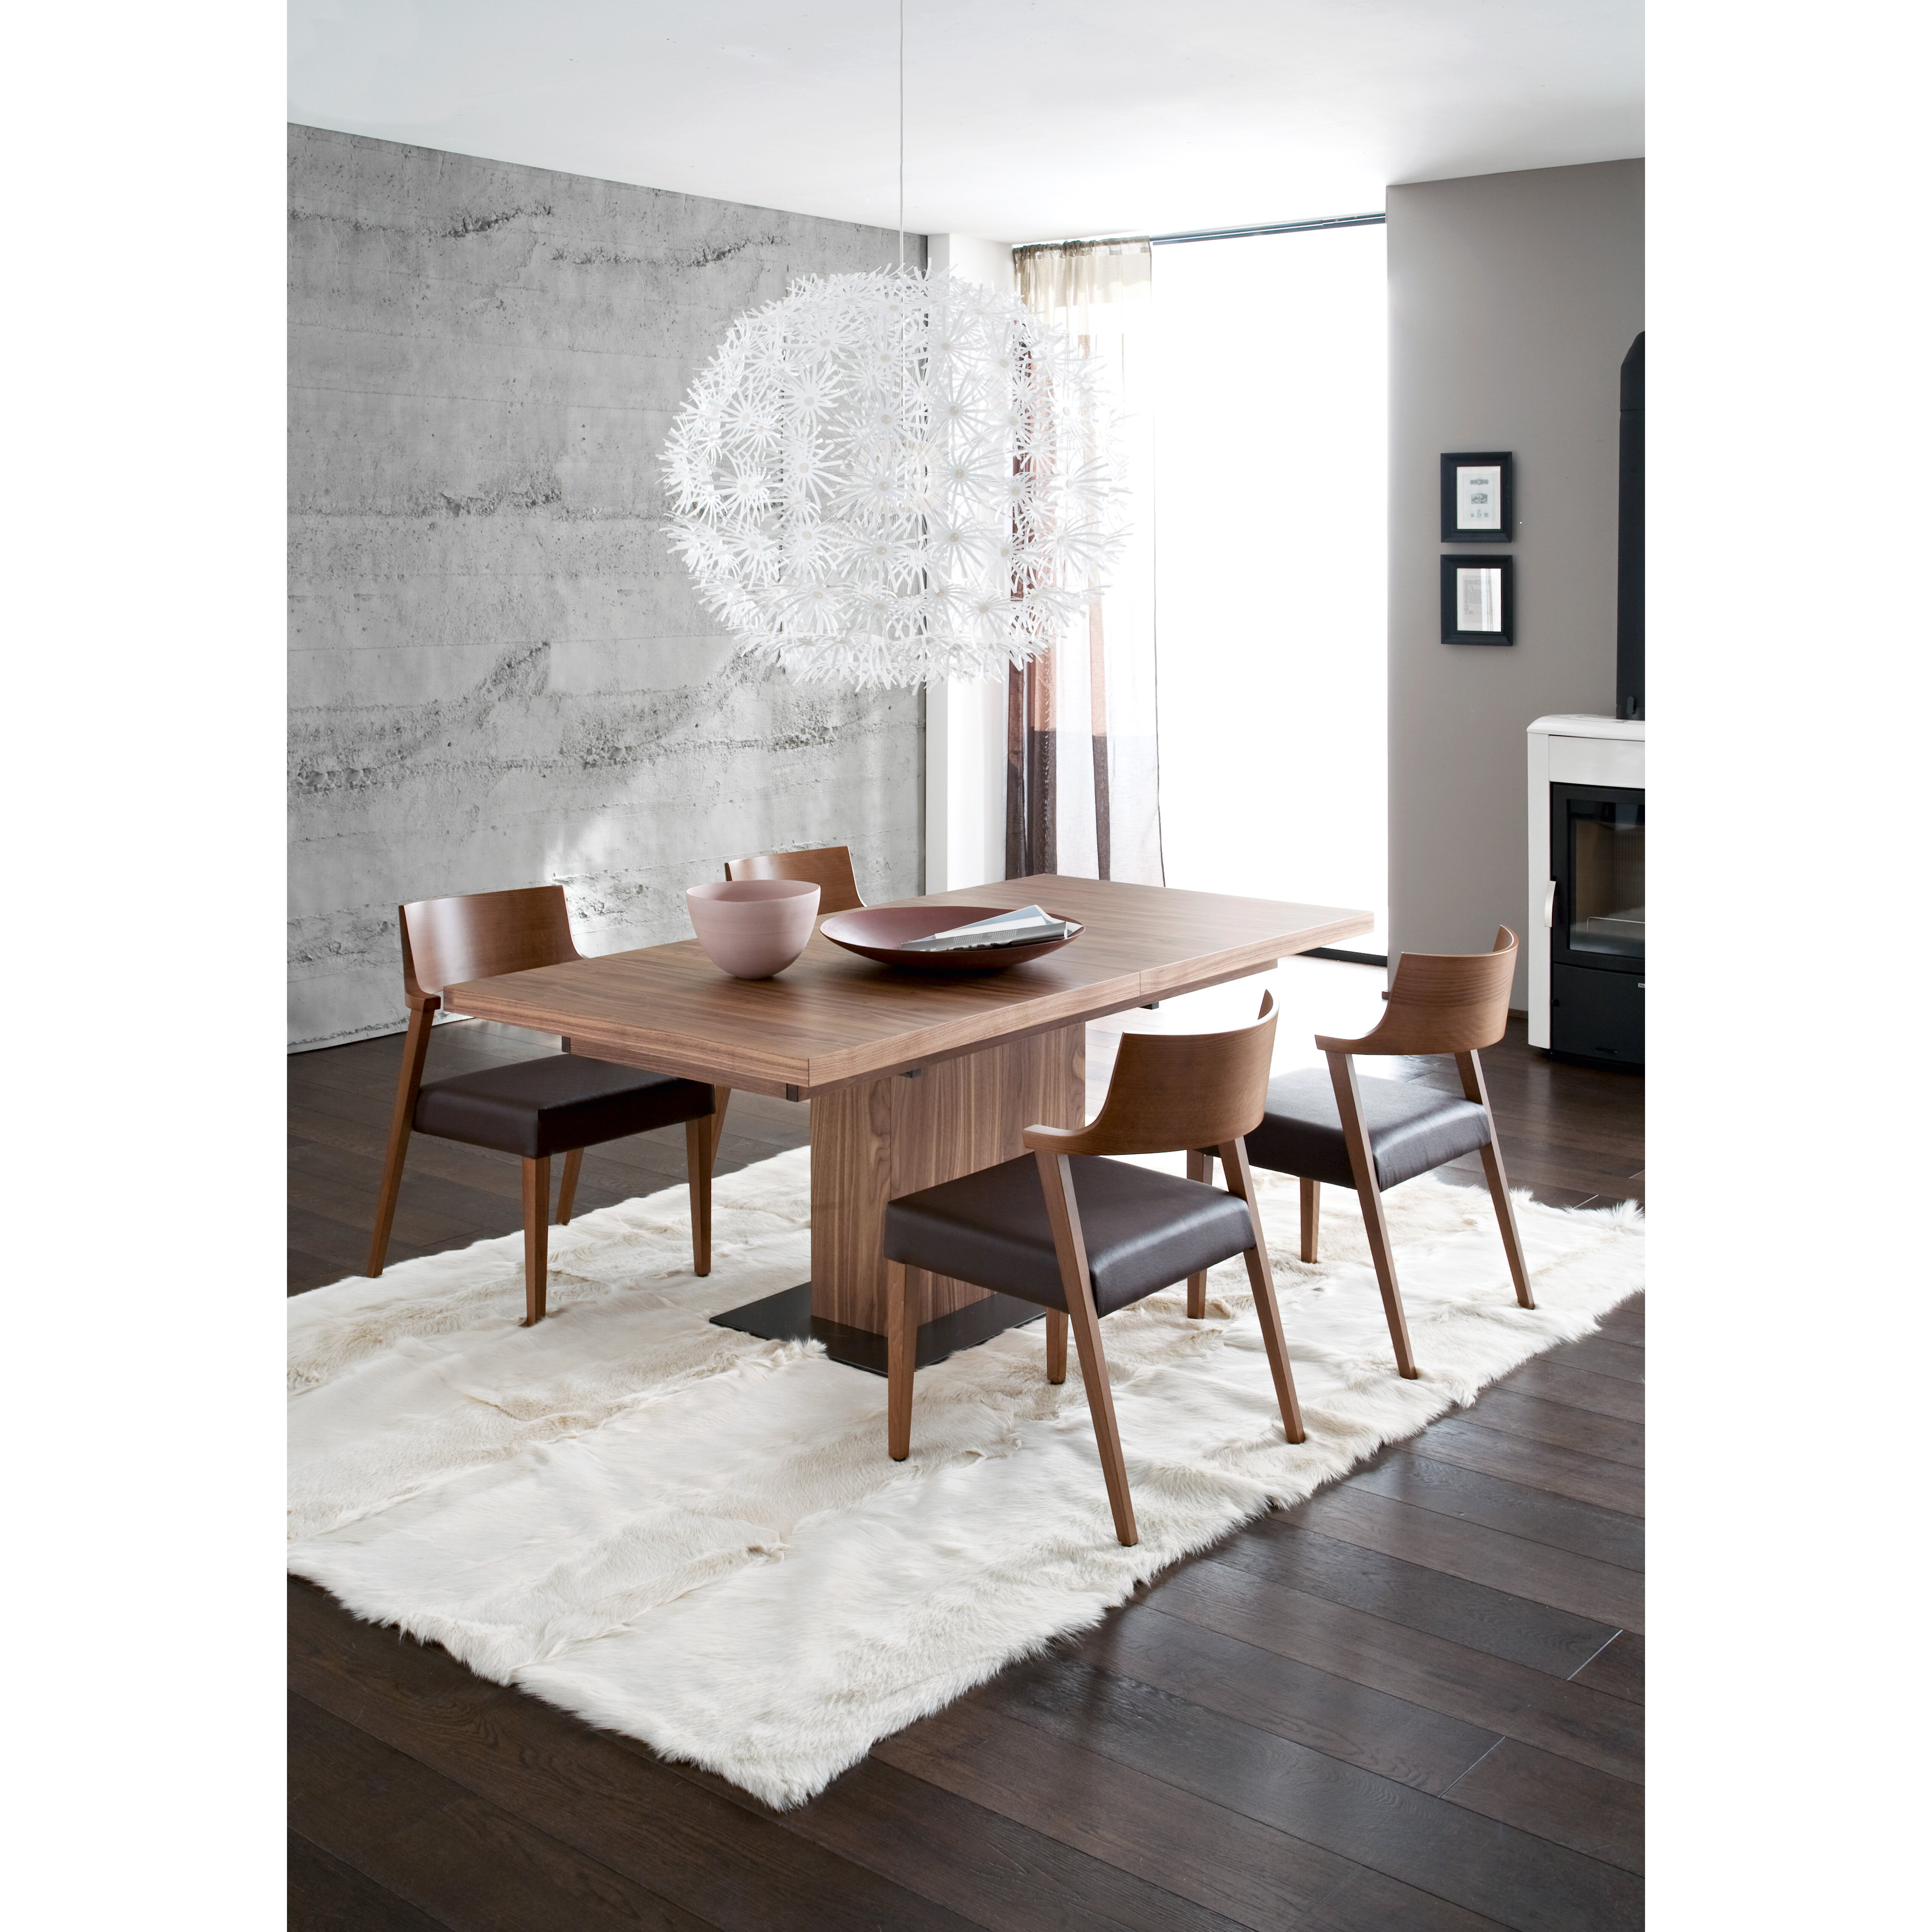 Standard Size For 8 Seater Dining Table | Bedroom and Living Room ...